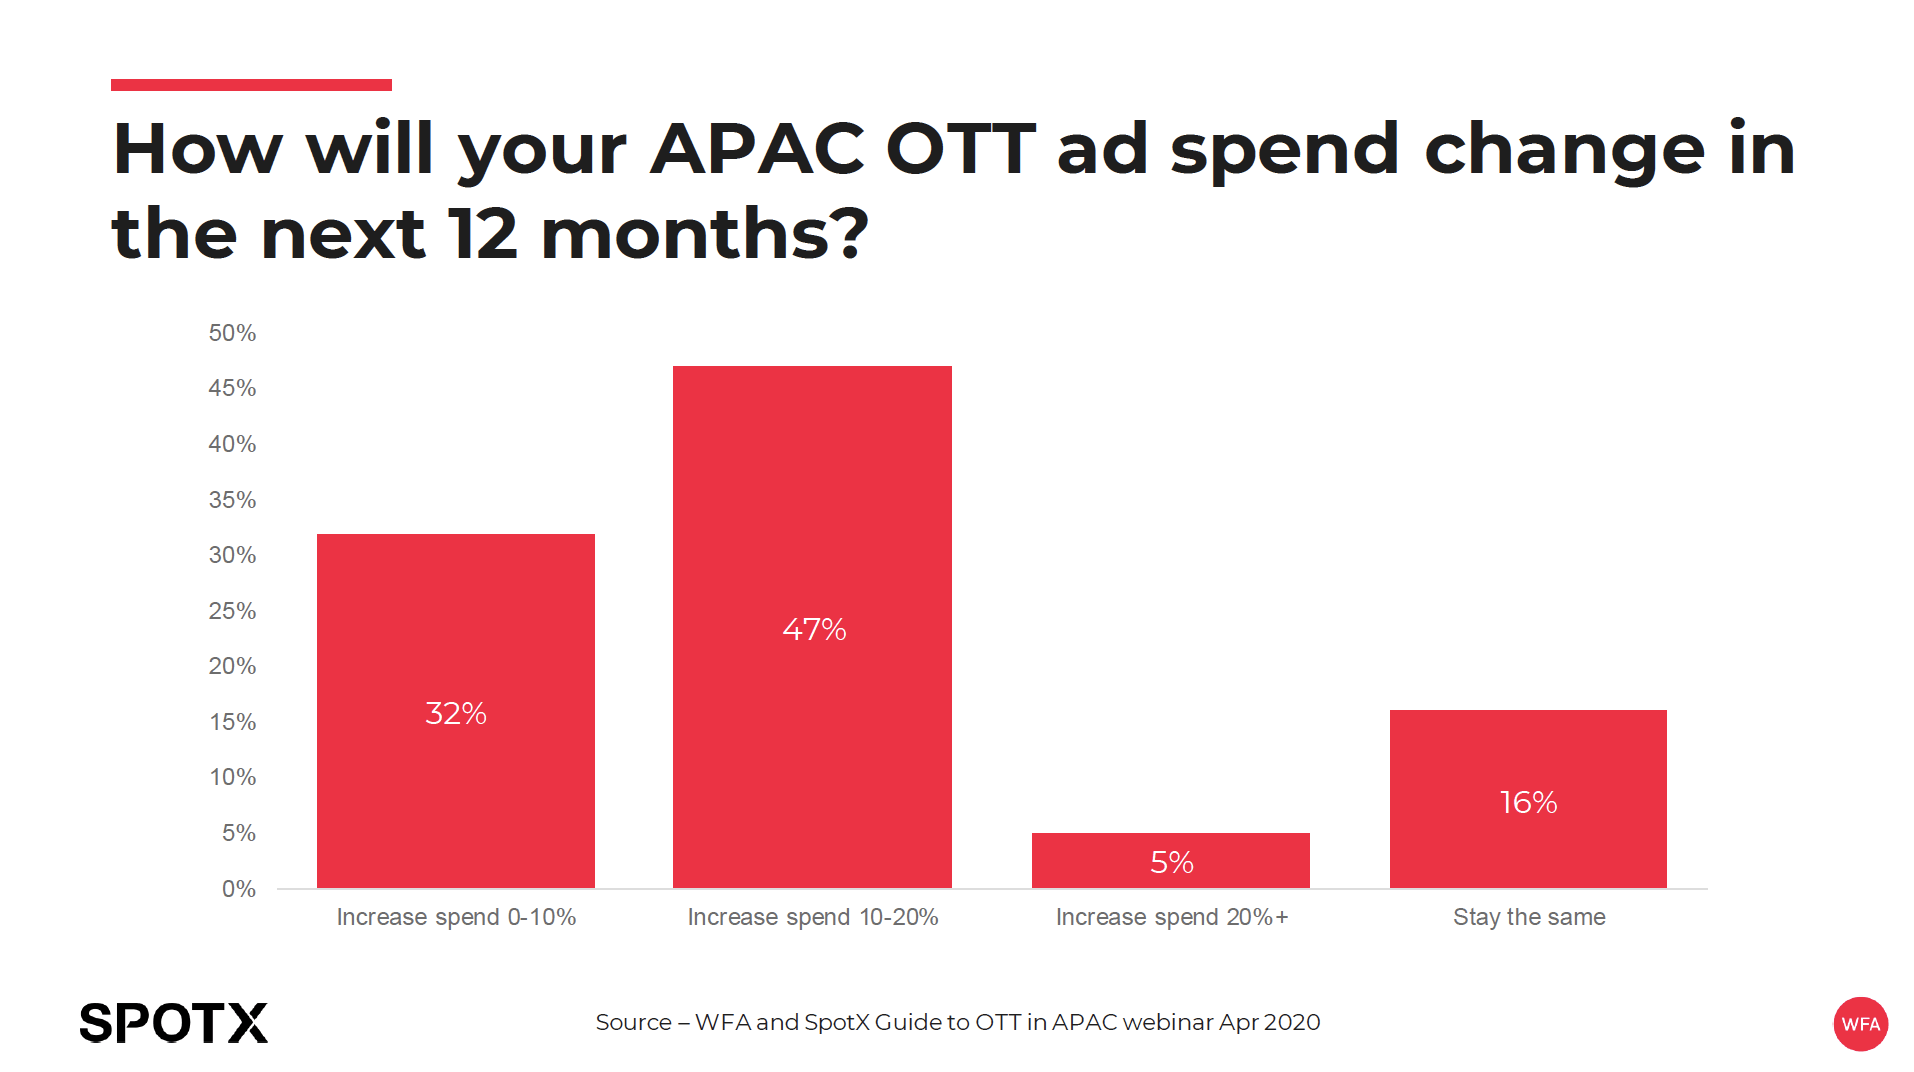 How OTT spend will change in APAC over next 12 months